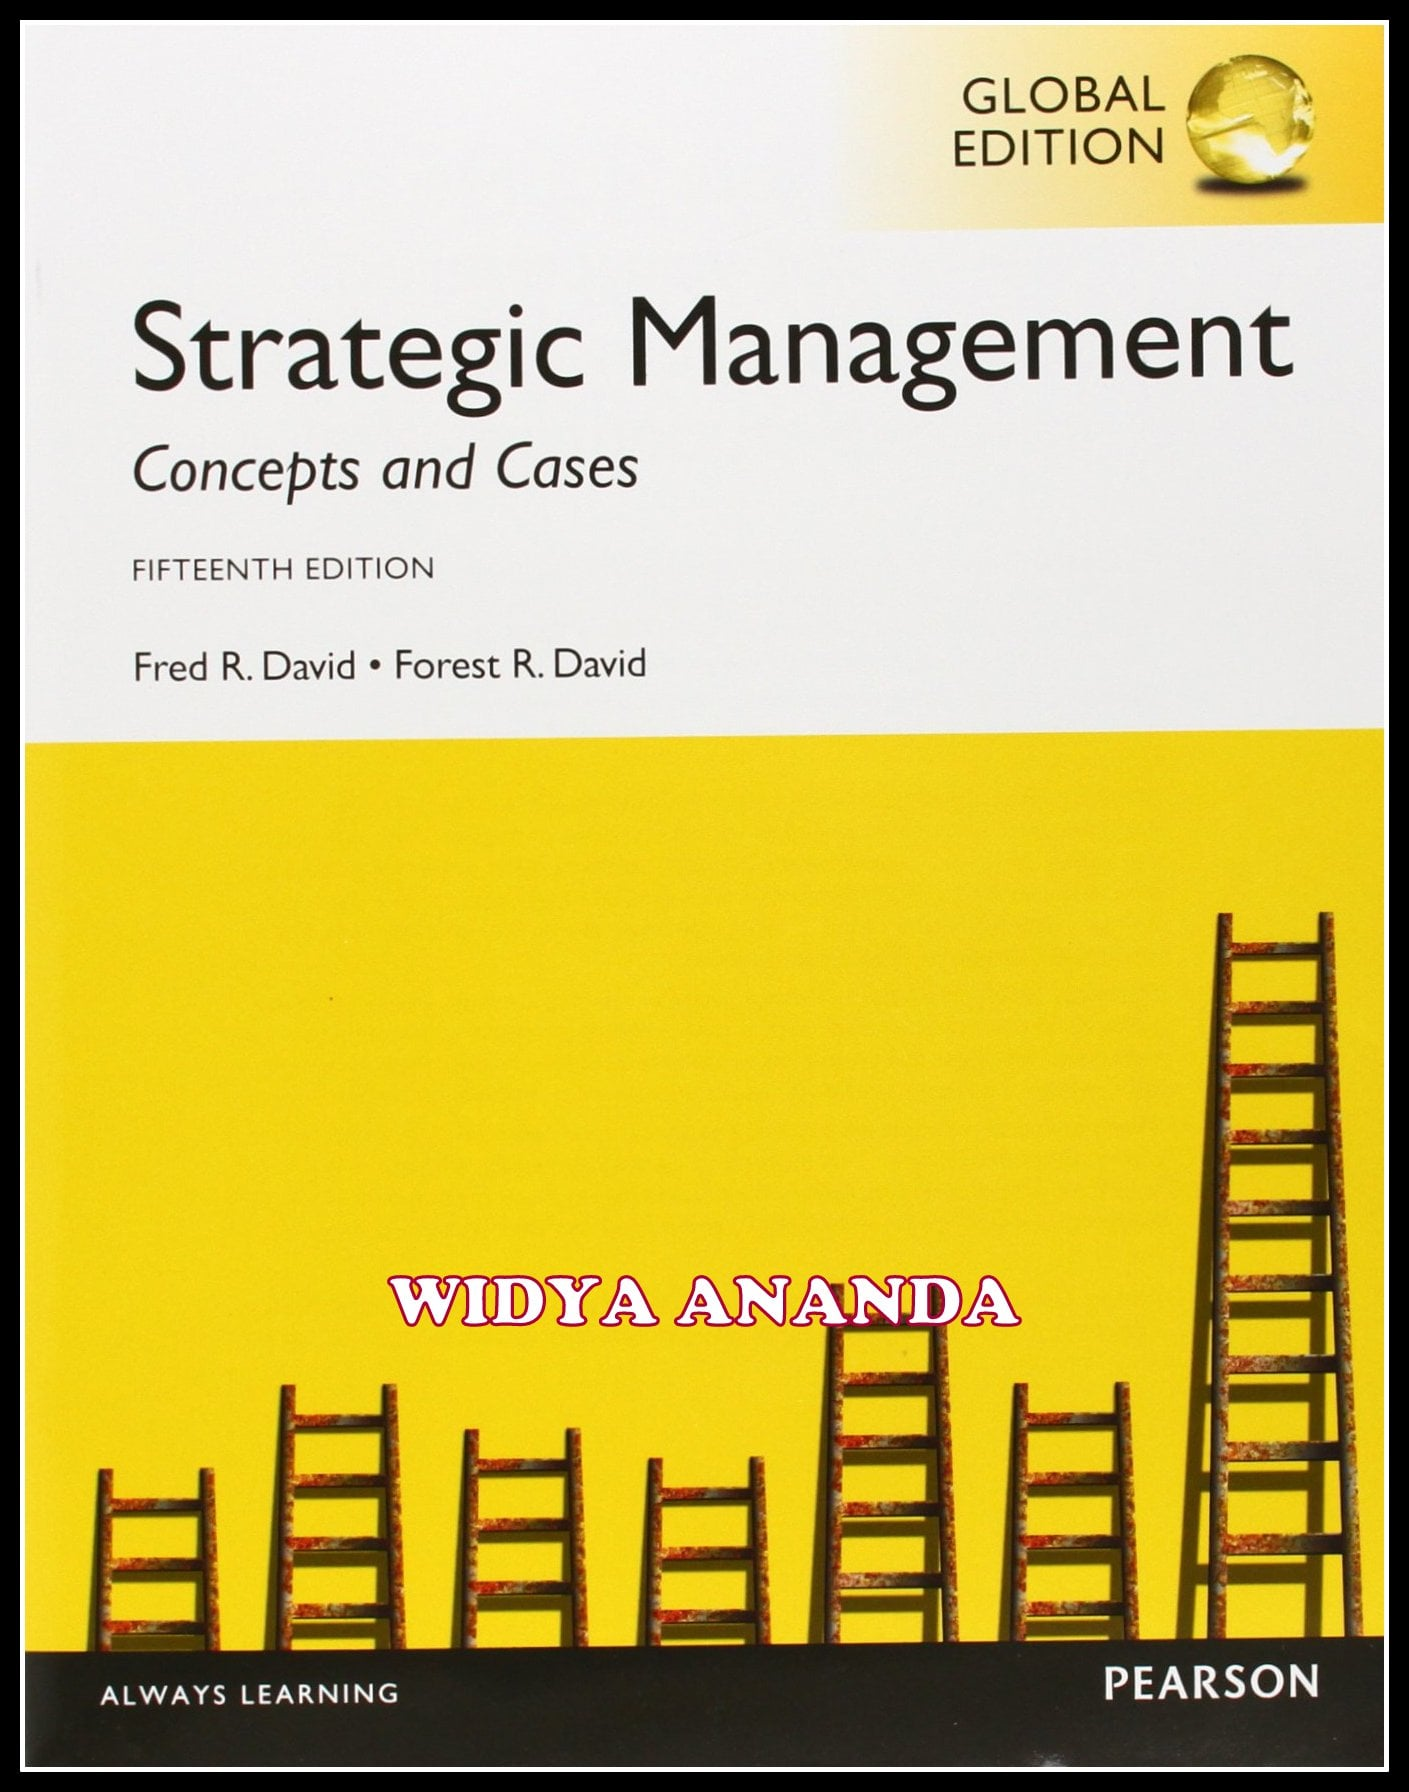 Strategic Management Concepts and Cases 15th edition